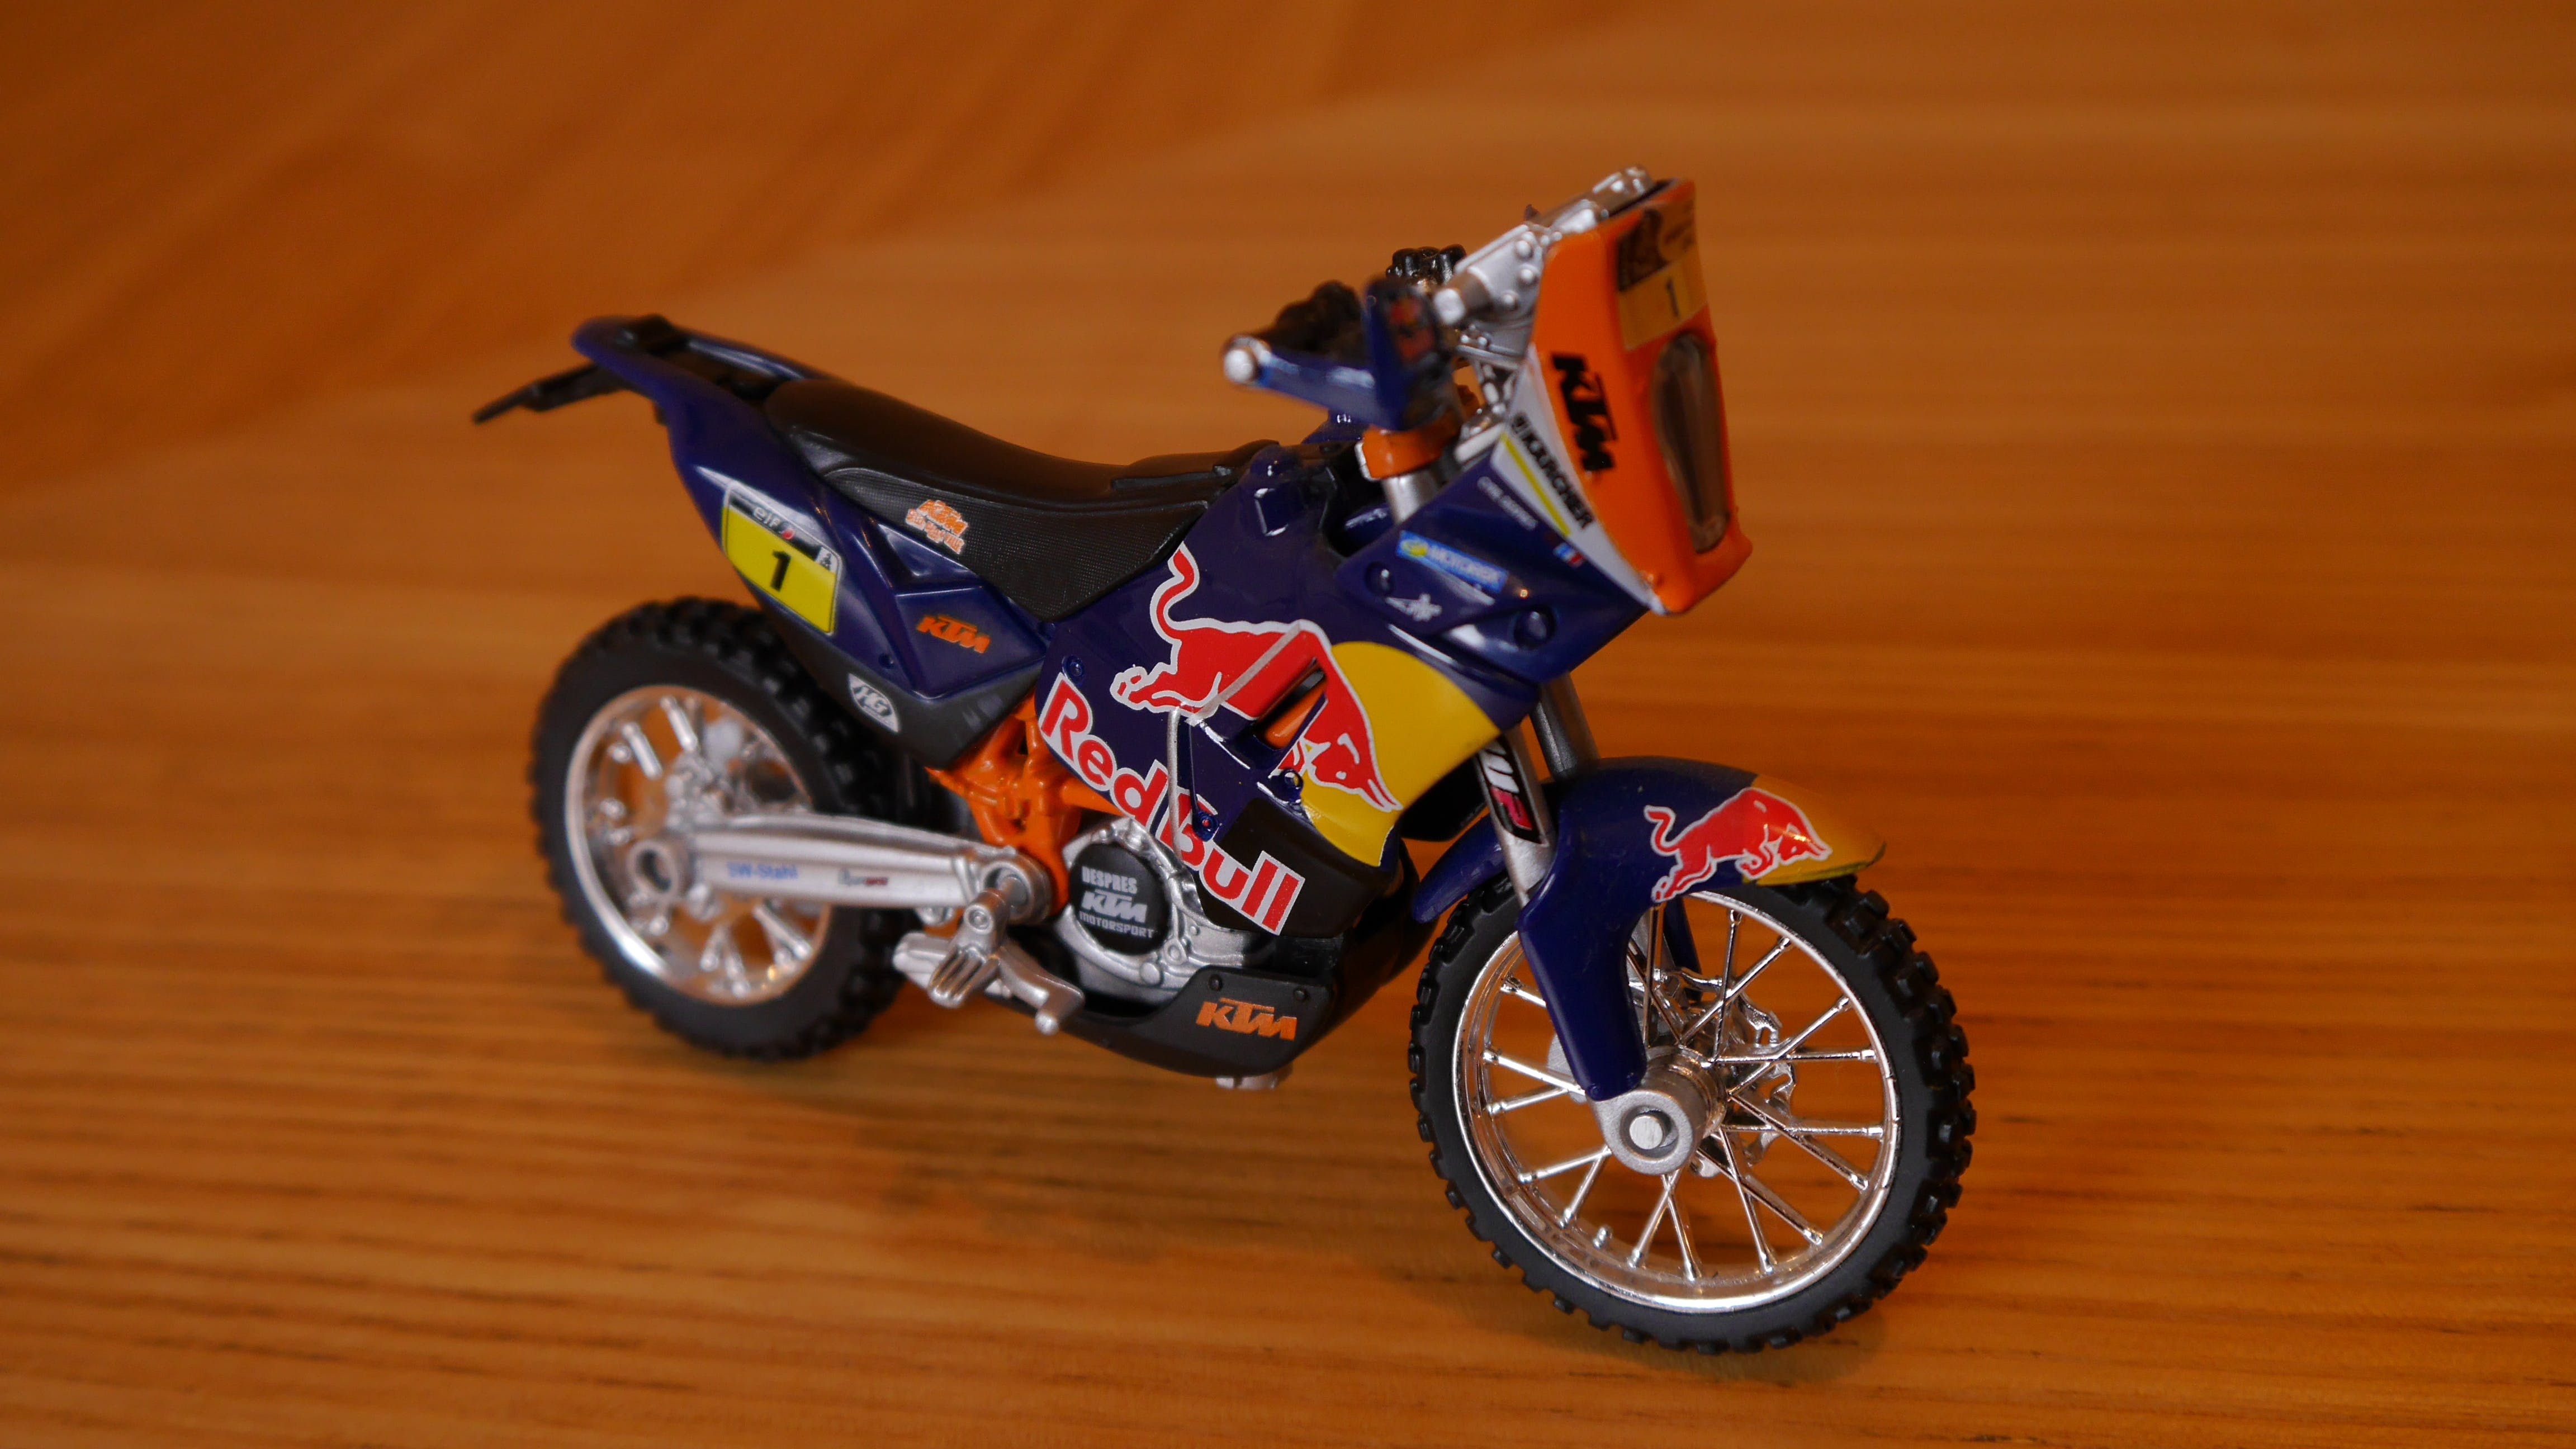 Free stock photo of KTM, motorcycle, red bull